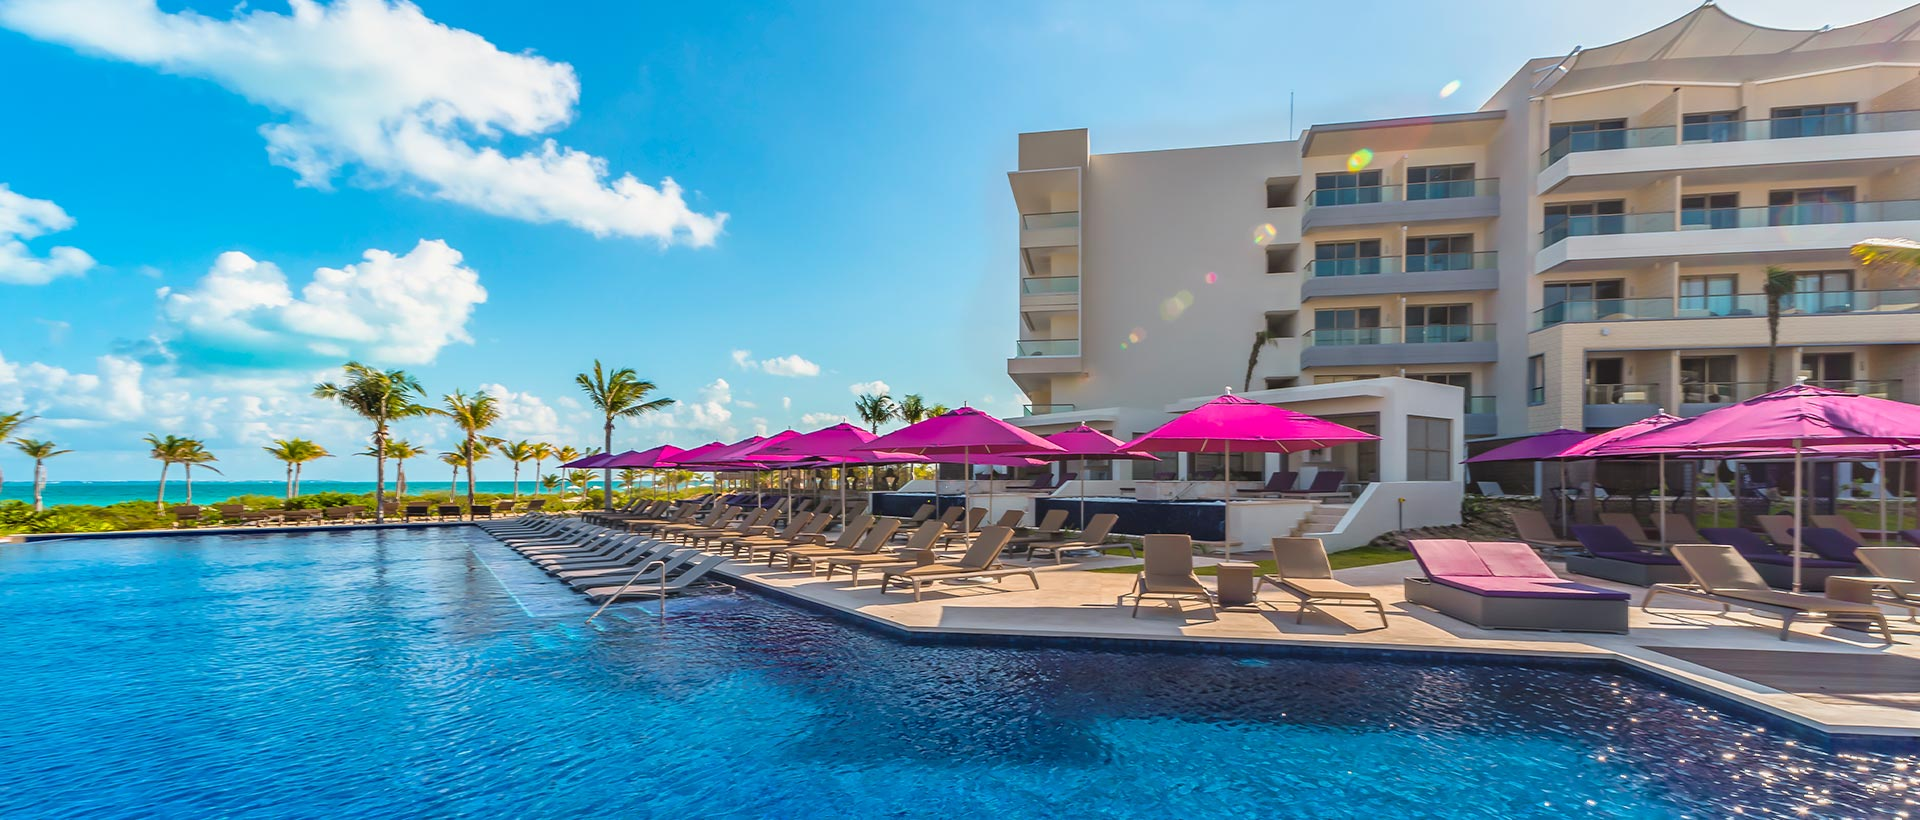 Planet Hollywood Adult Scene Cancun, An Autograph Collection All-Inclusive Resort - Adults Only